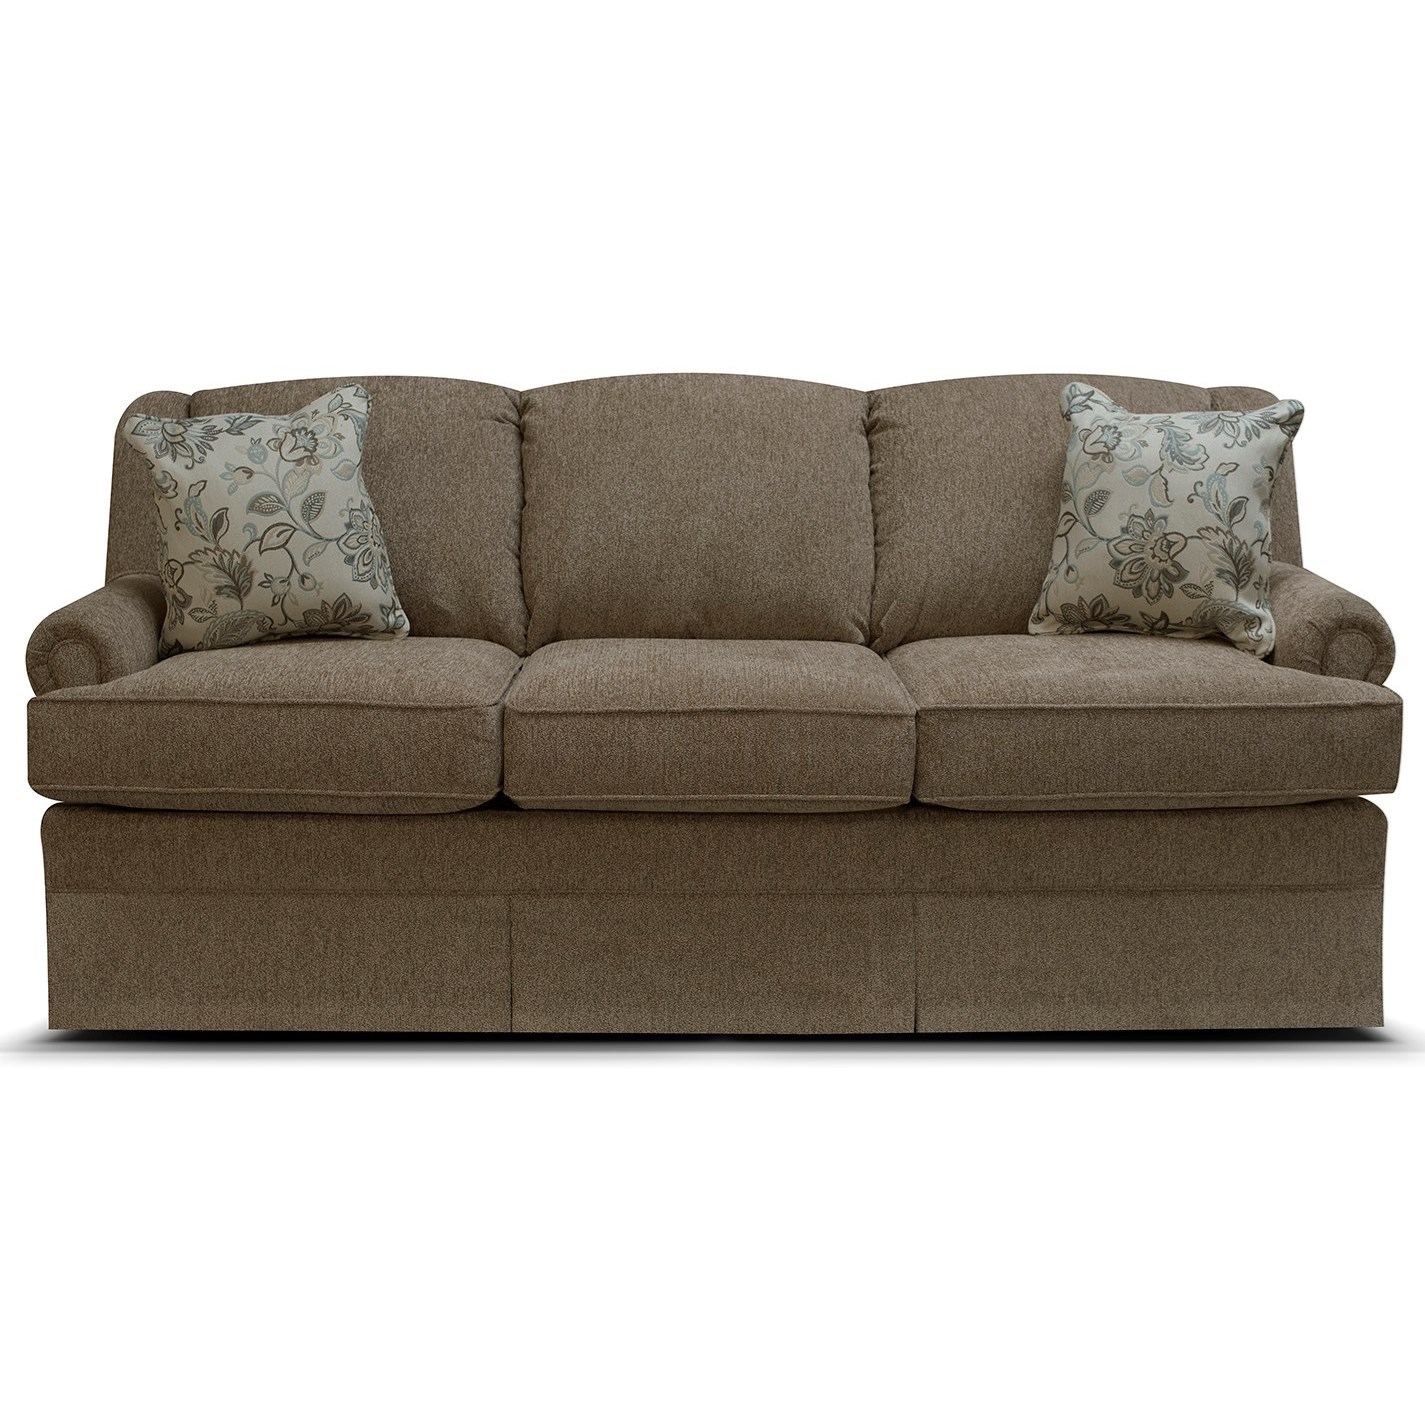 Rochelle Sofa by England at VanDrie Home Furnishings